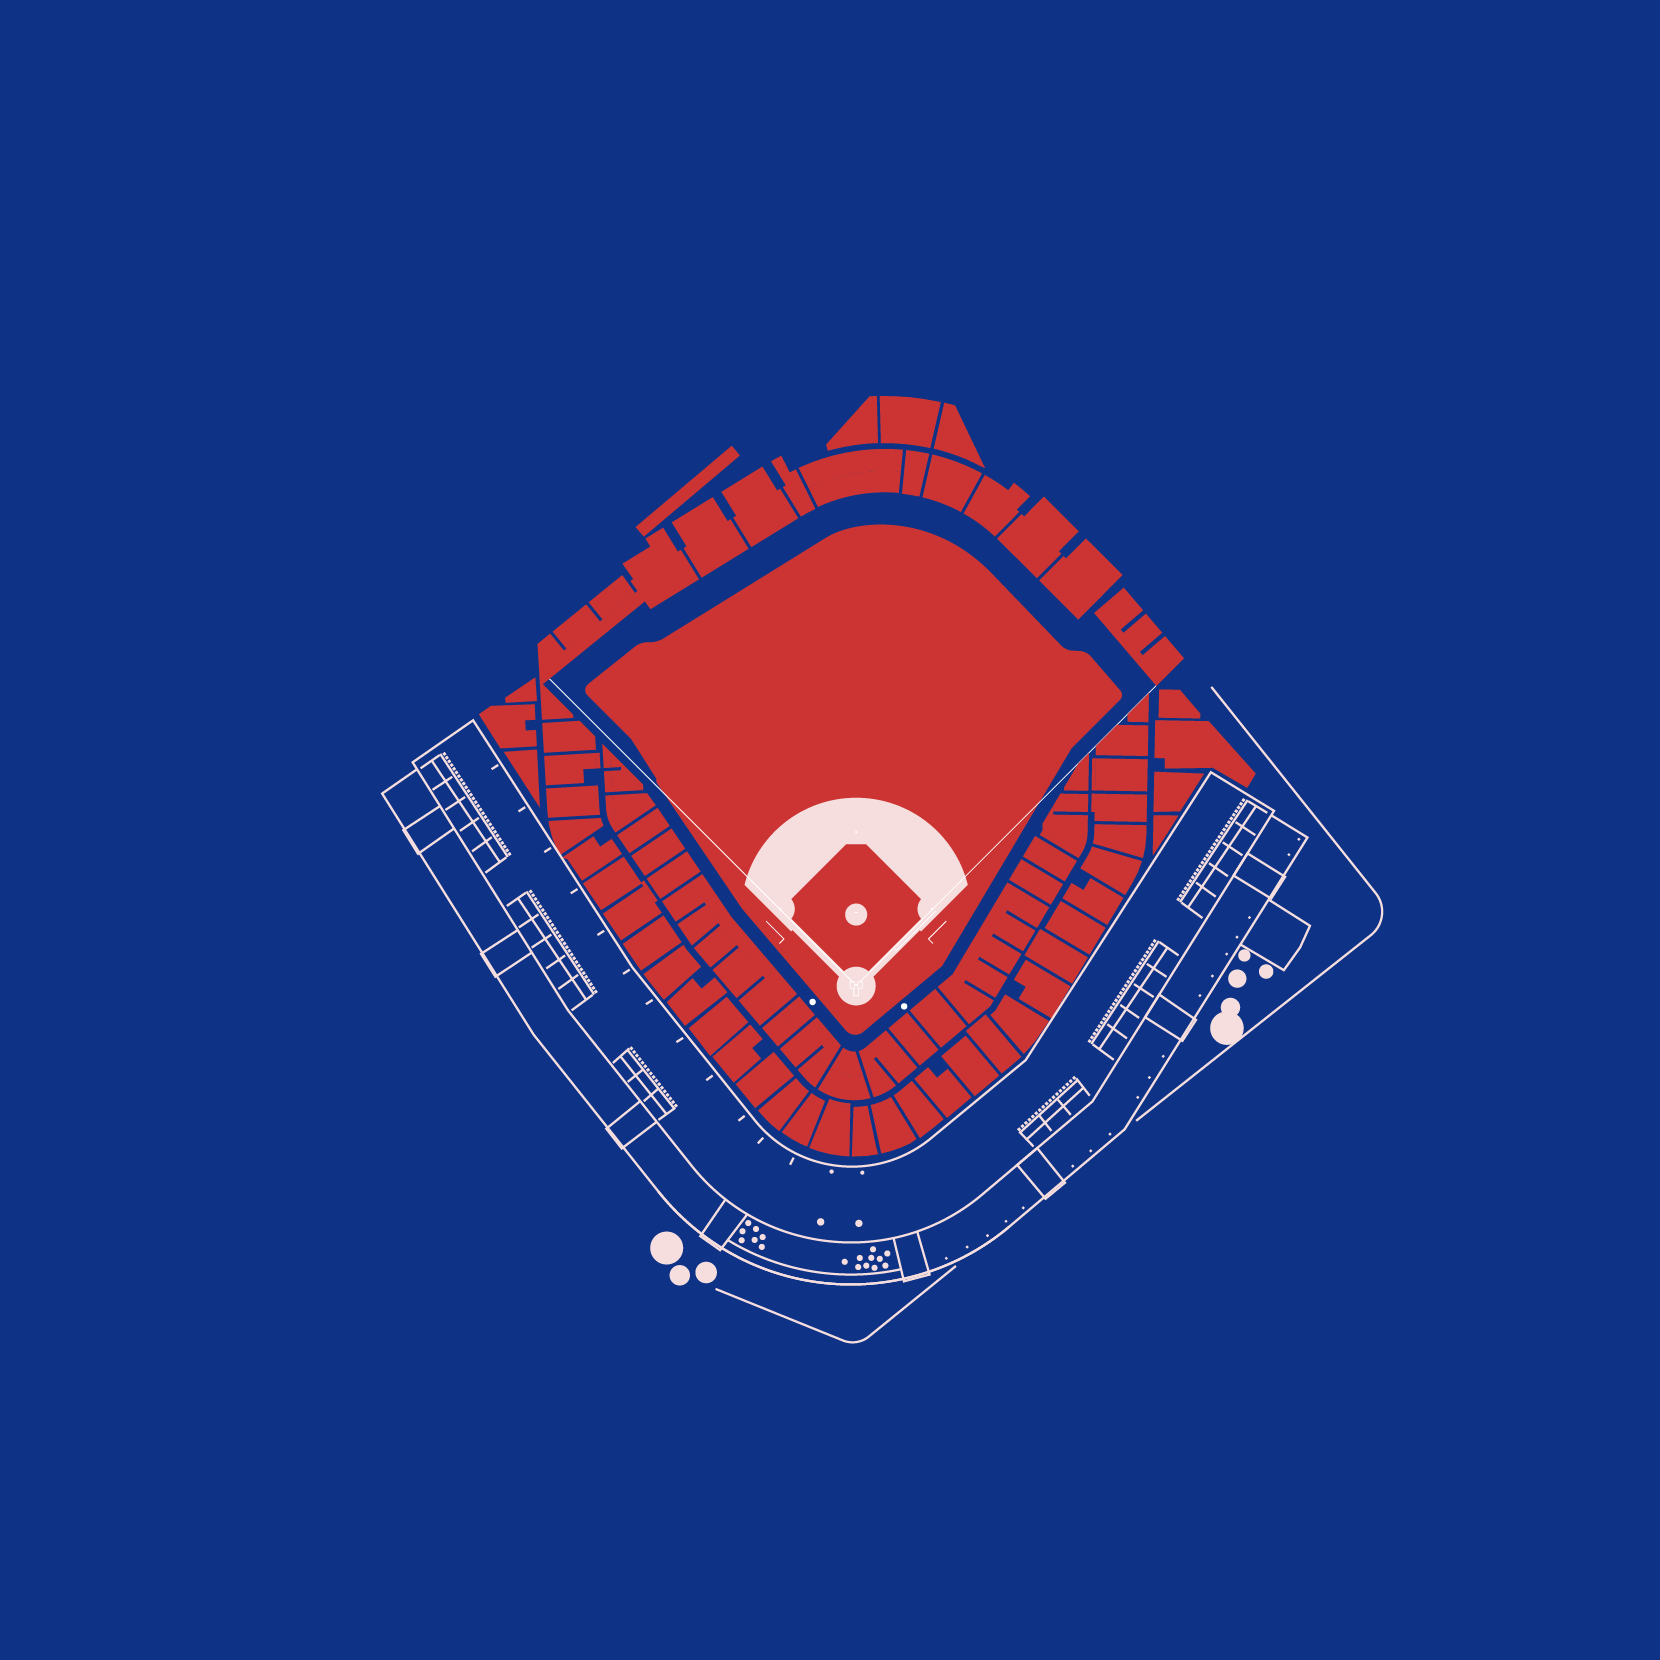 11 Wrigley Field Chicago Cubs.png